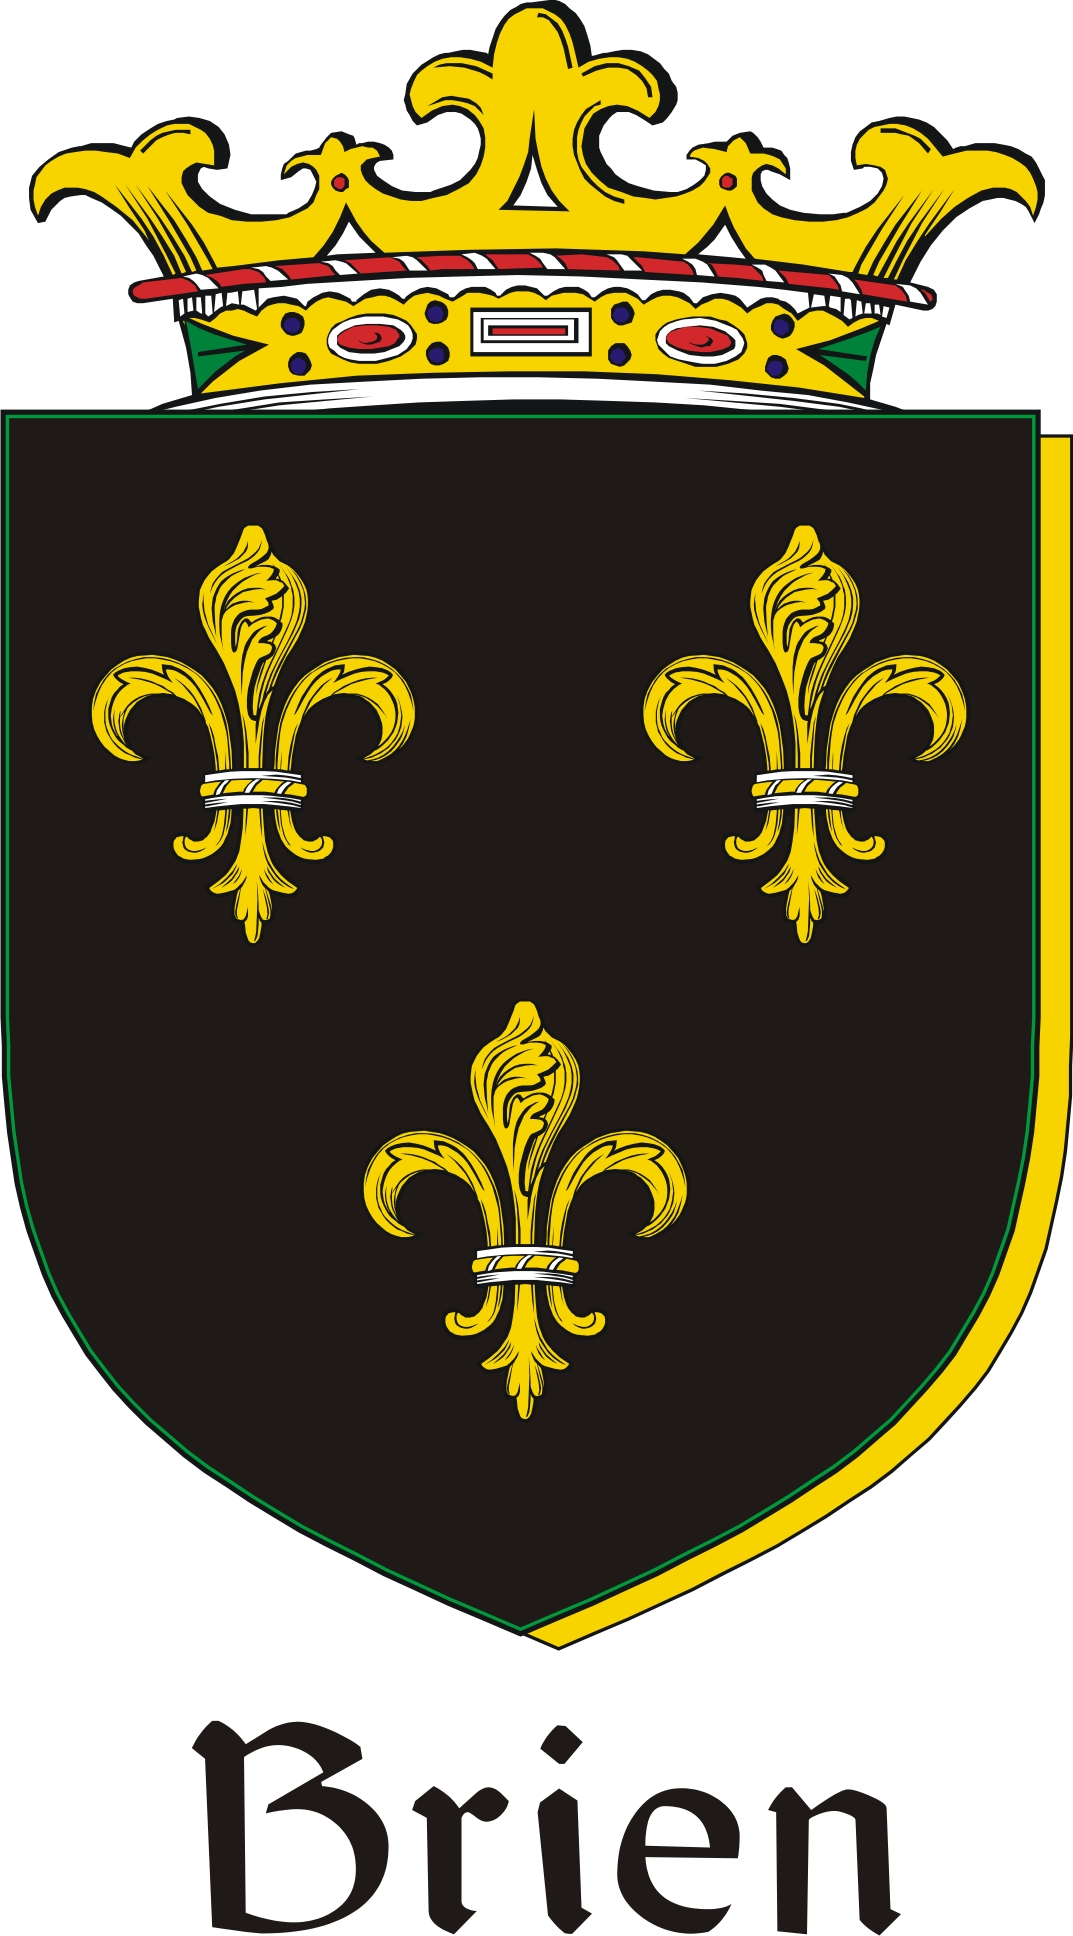 Thumbnail Brien Family Crest / Irish Coat of Arms Image Download